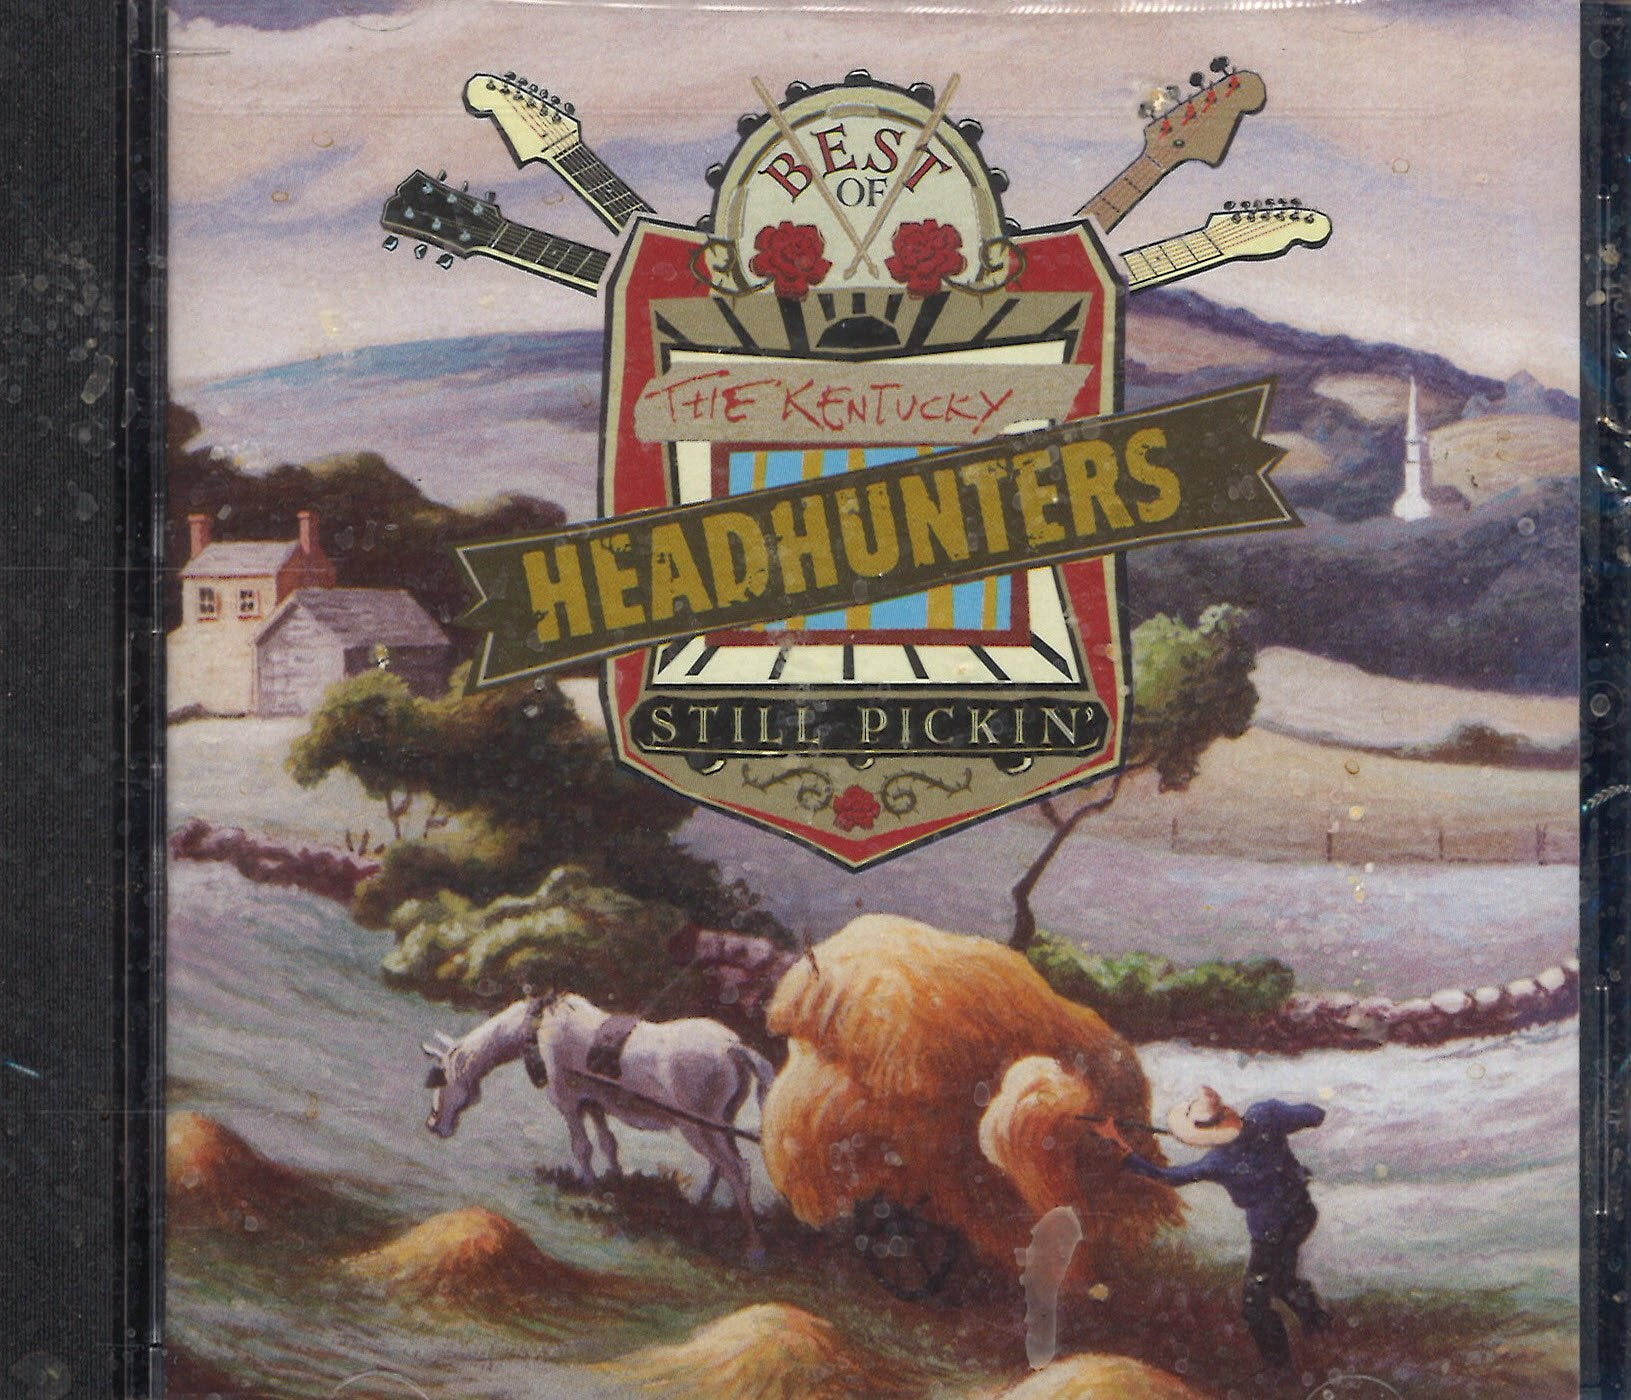 Best Of The Kentucky Headhunters - Still Pickin'